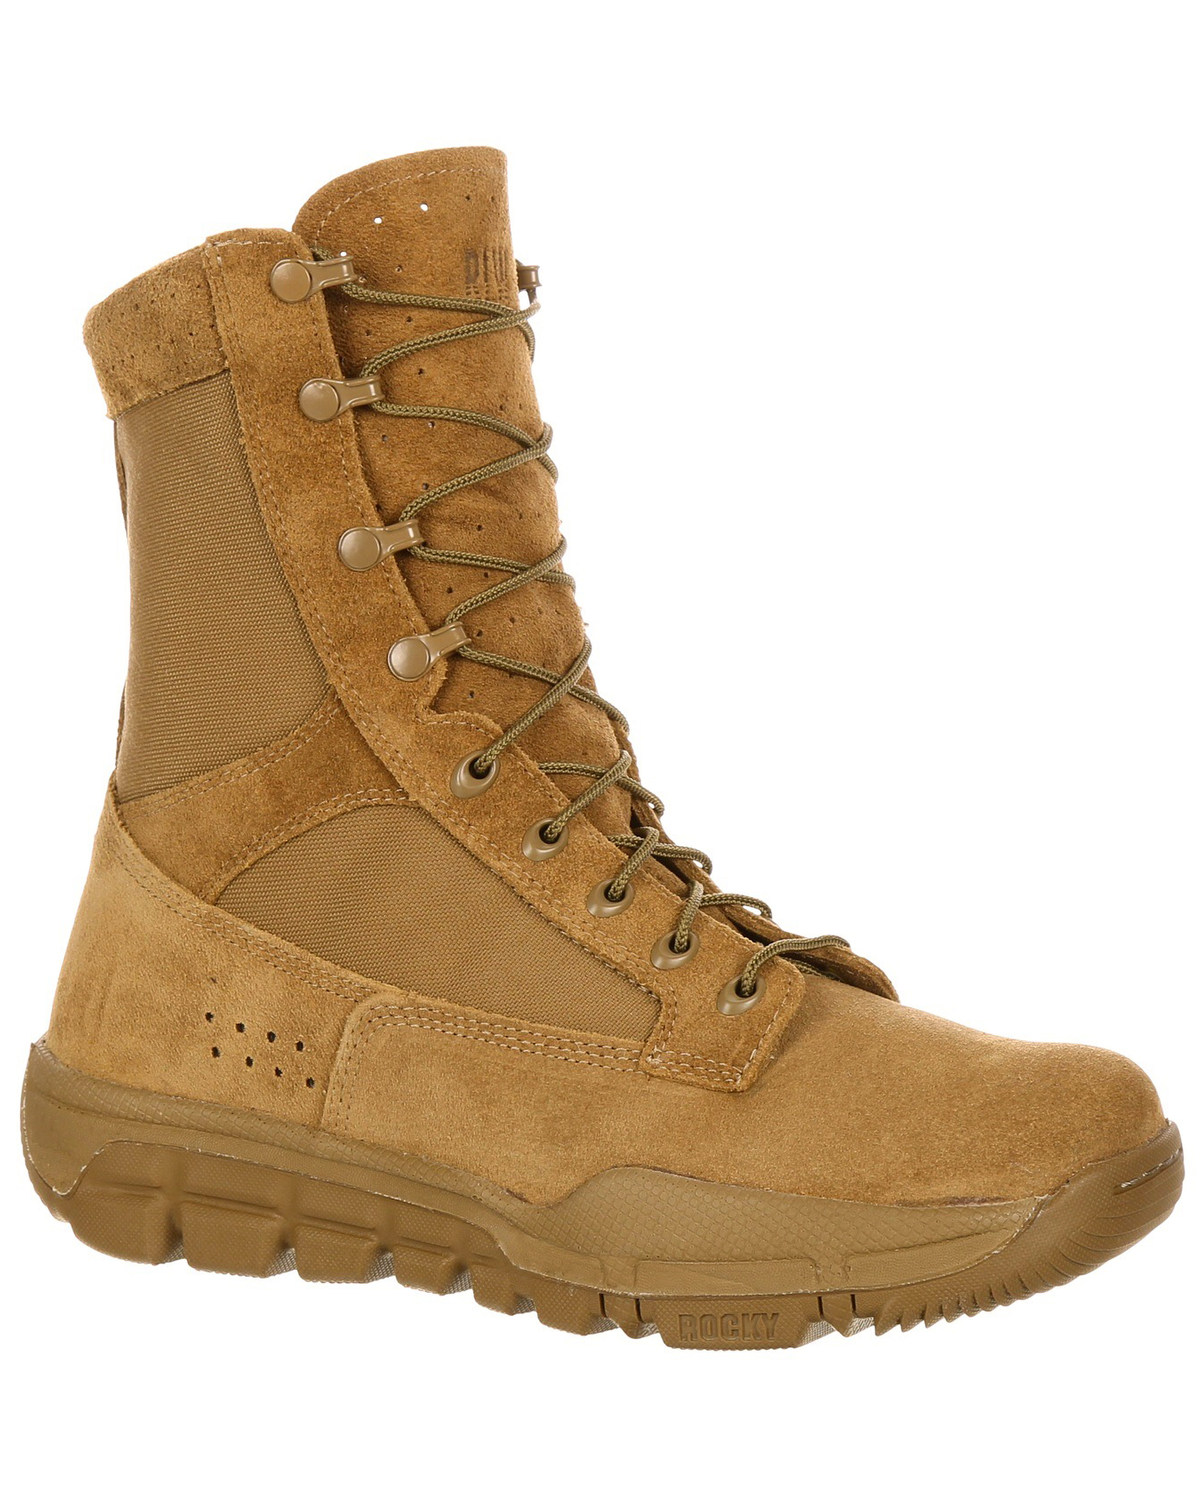 Lightweight Commercial Military Boots